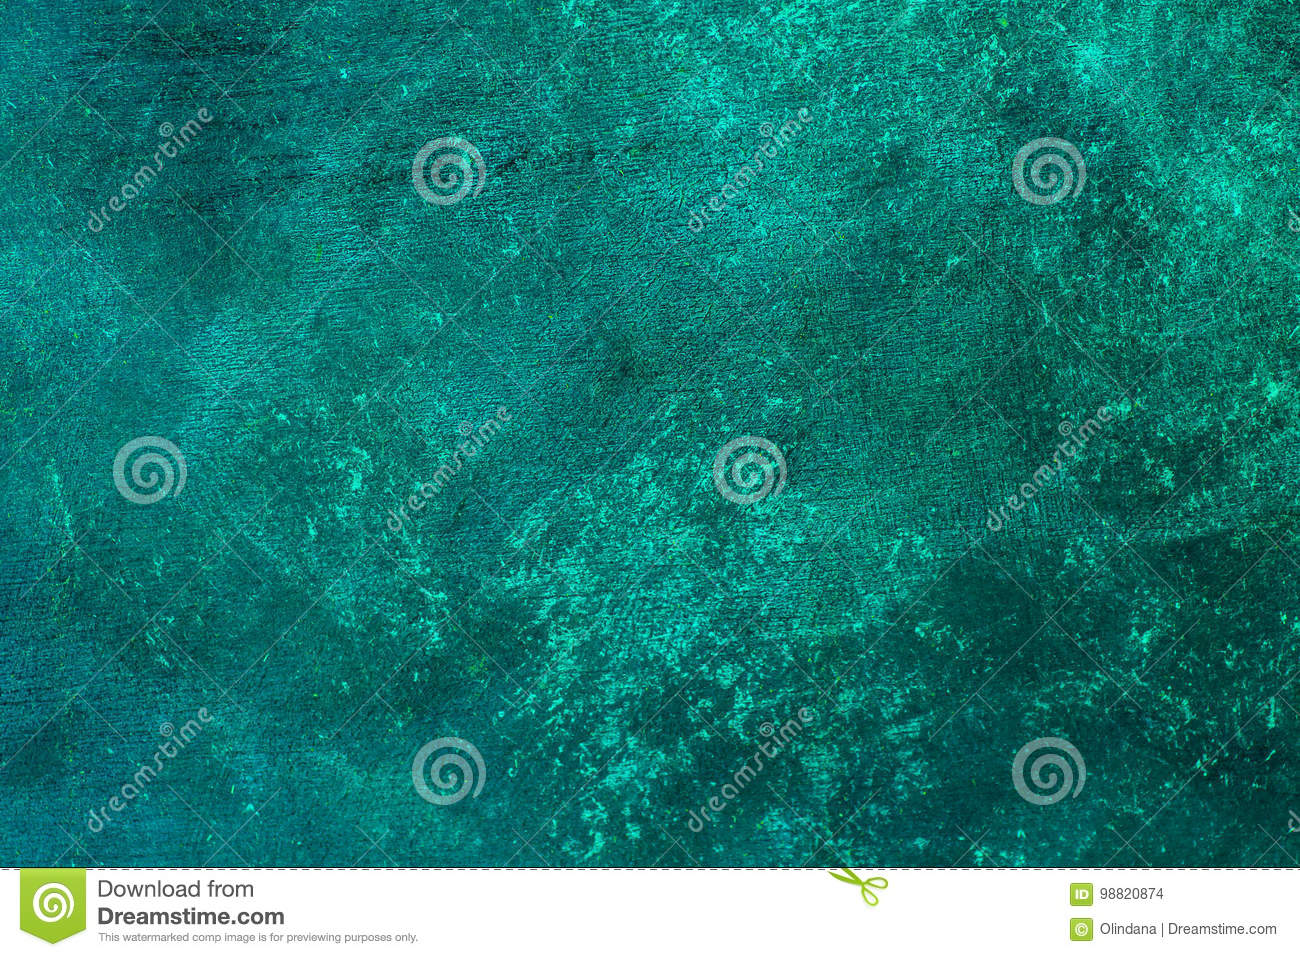 Old distressed blue turquoise rusted brass background with rough texture. Stained, gradient, concrete